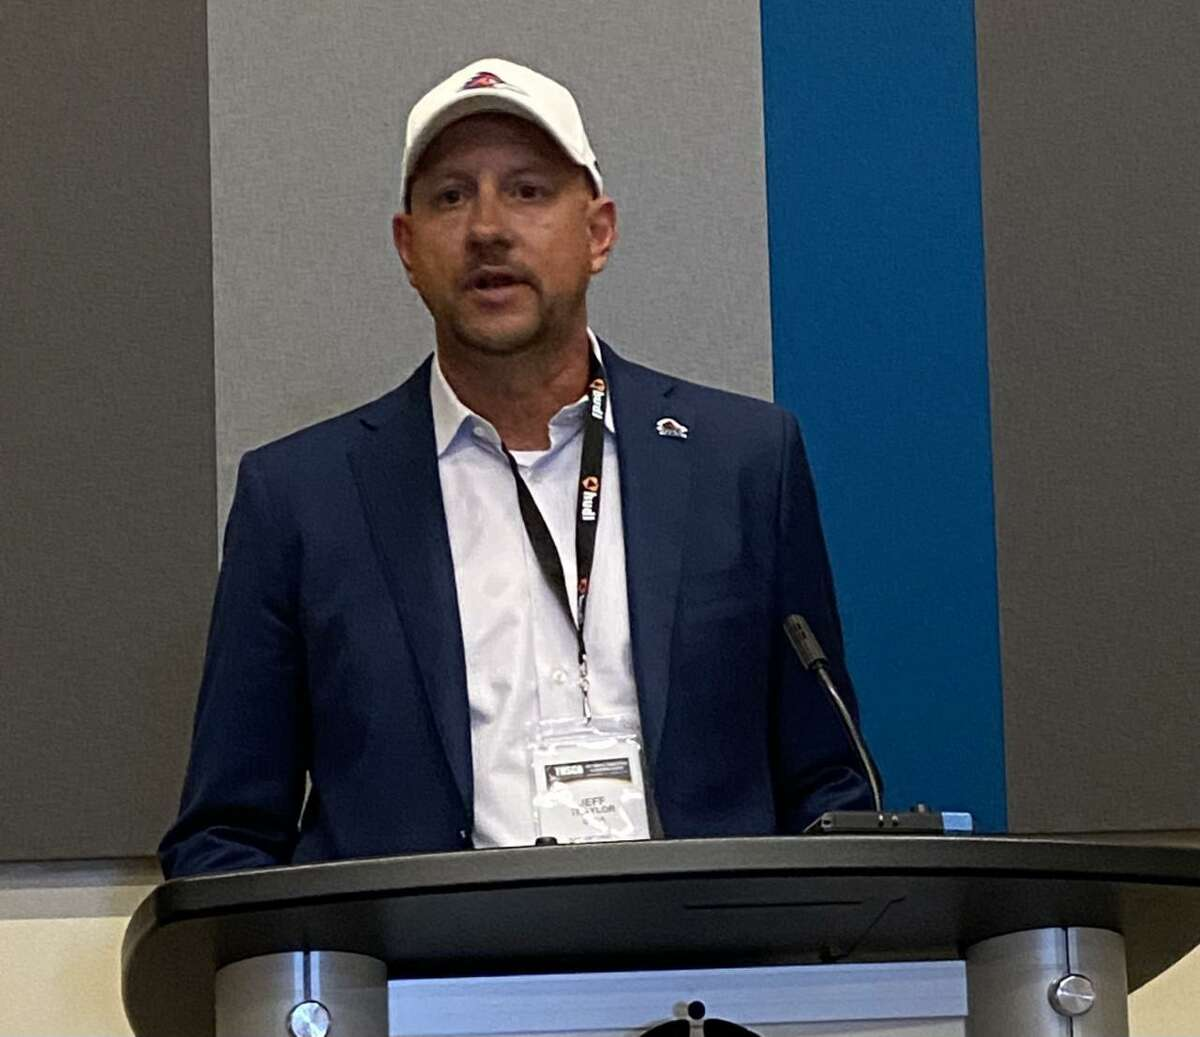 UTSA football coach Jeff Traylor addresses the media during the Texas High School Coaches Association's convention on Monday, September 19, 2021 at the Henry B. Gonzalez Convention Center in San Antonio.